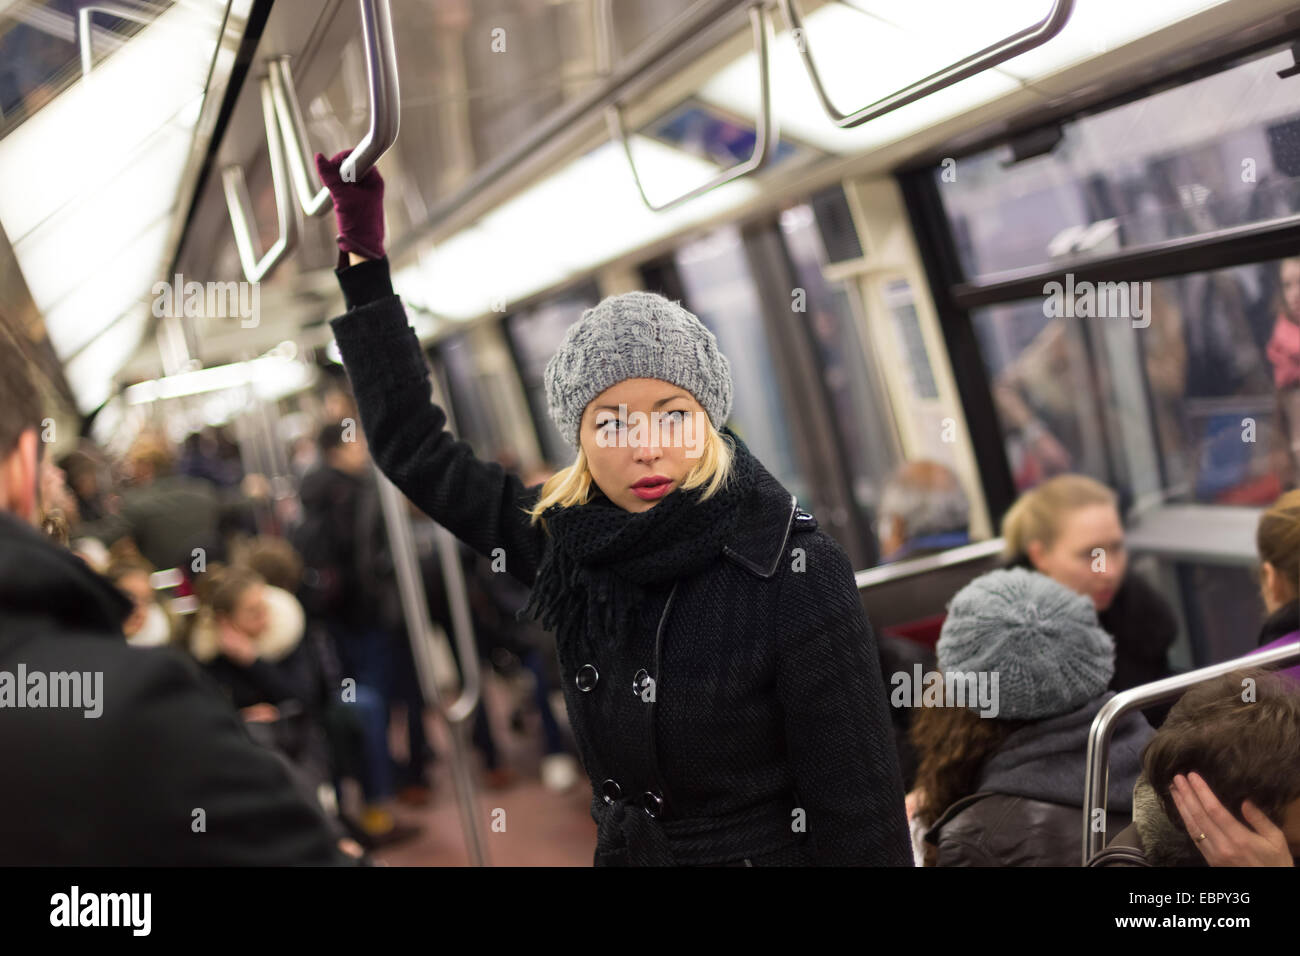 Woman on subway. - Stock Image